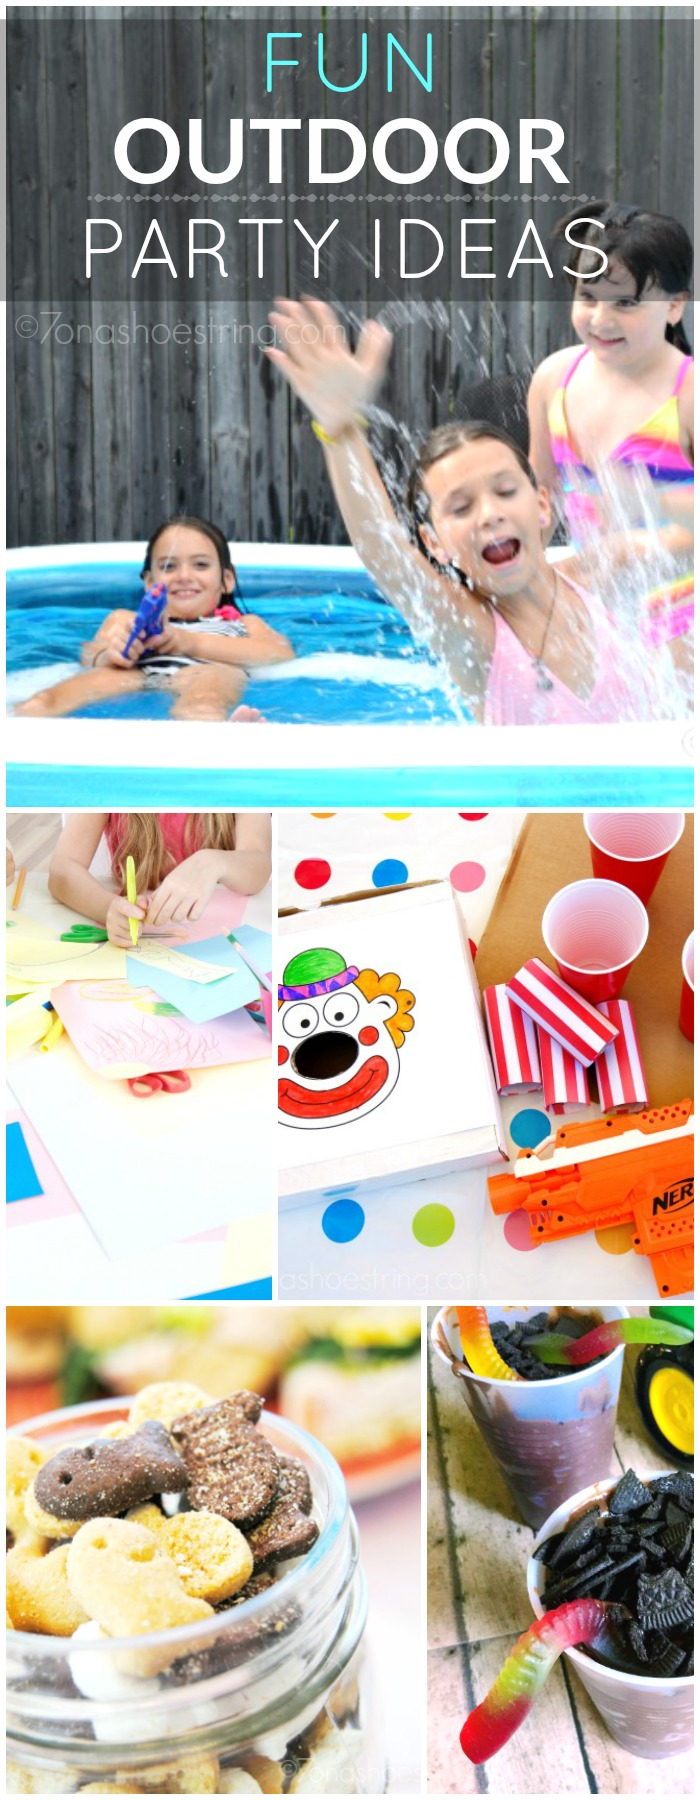 fun outdoor party ideas perfect for kids